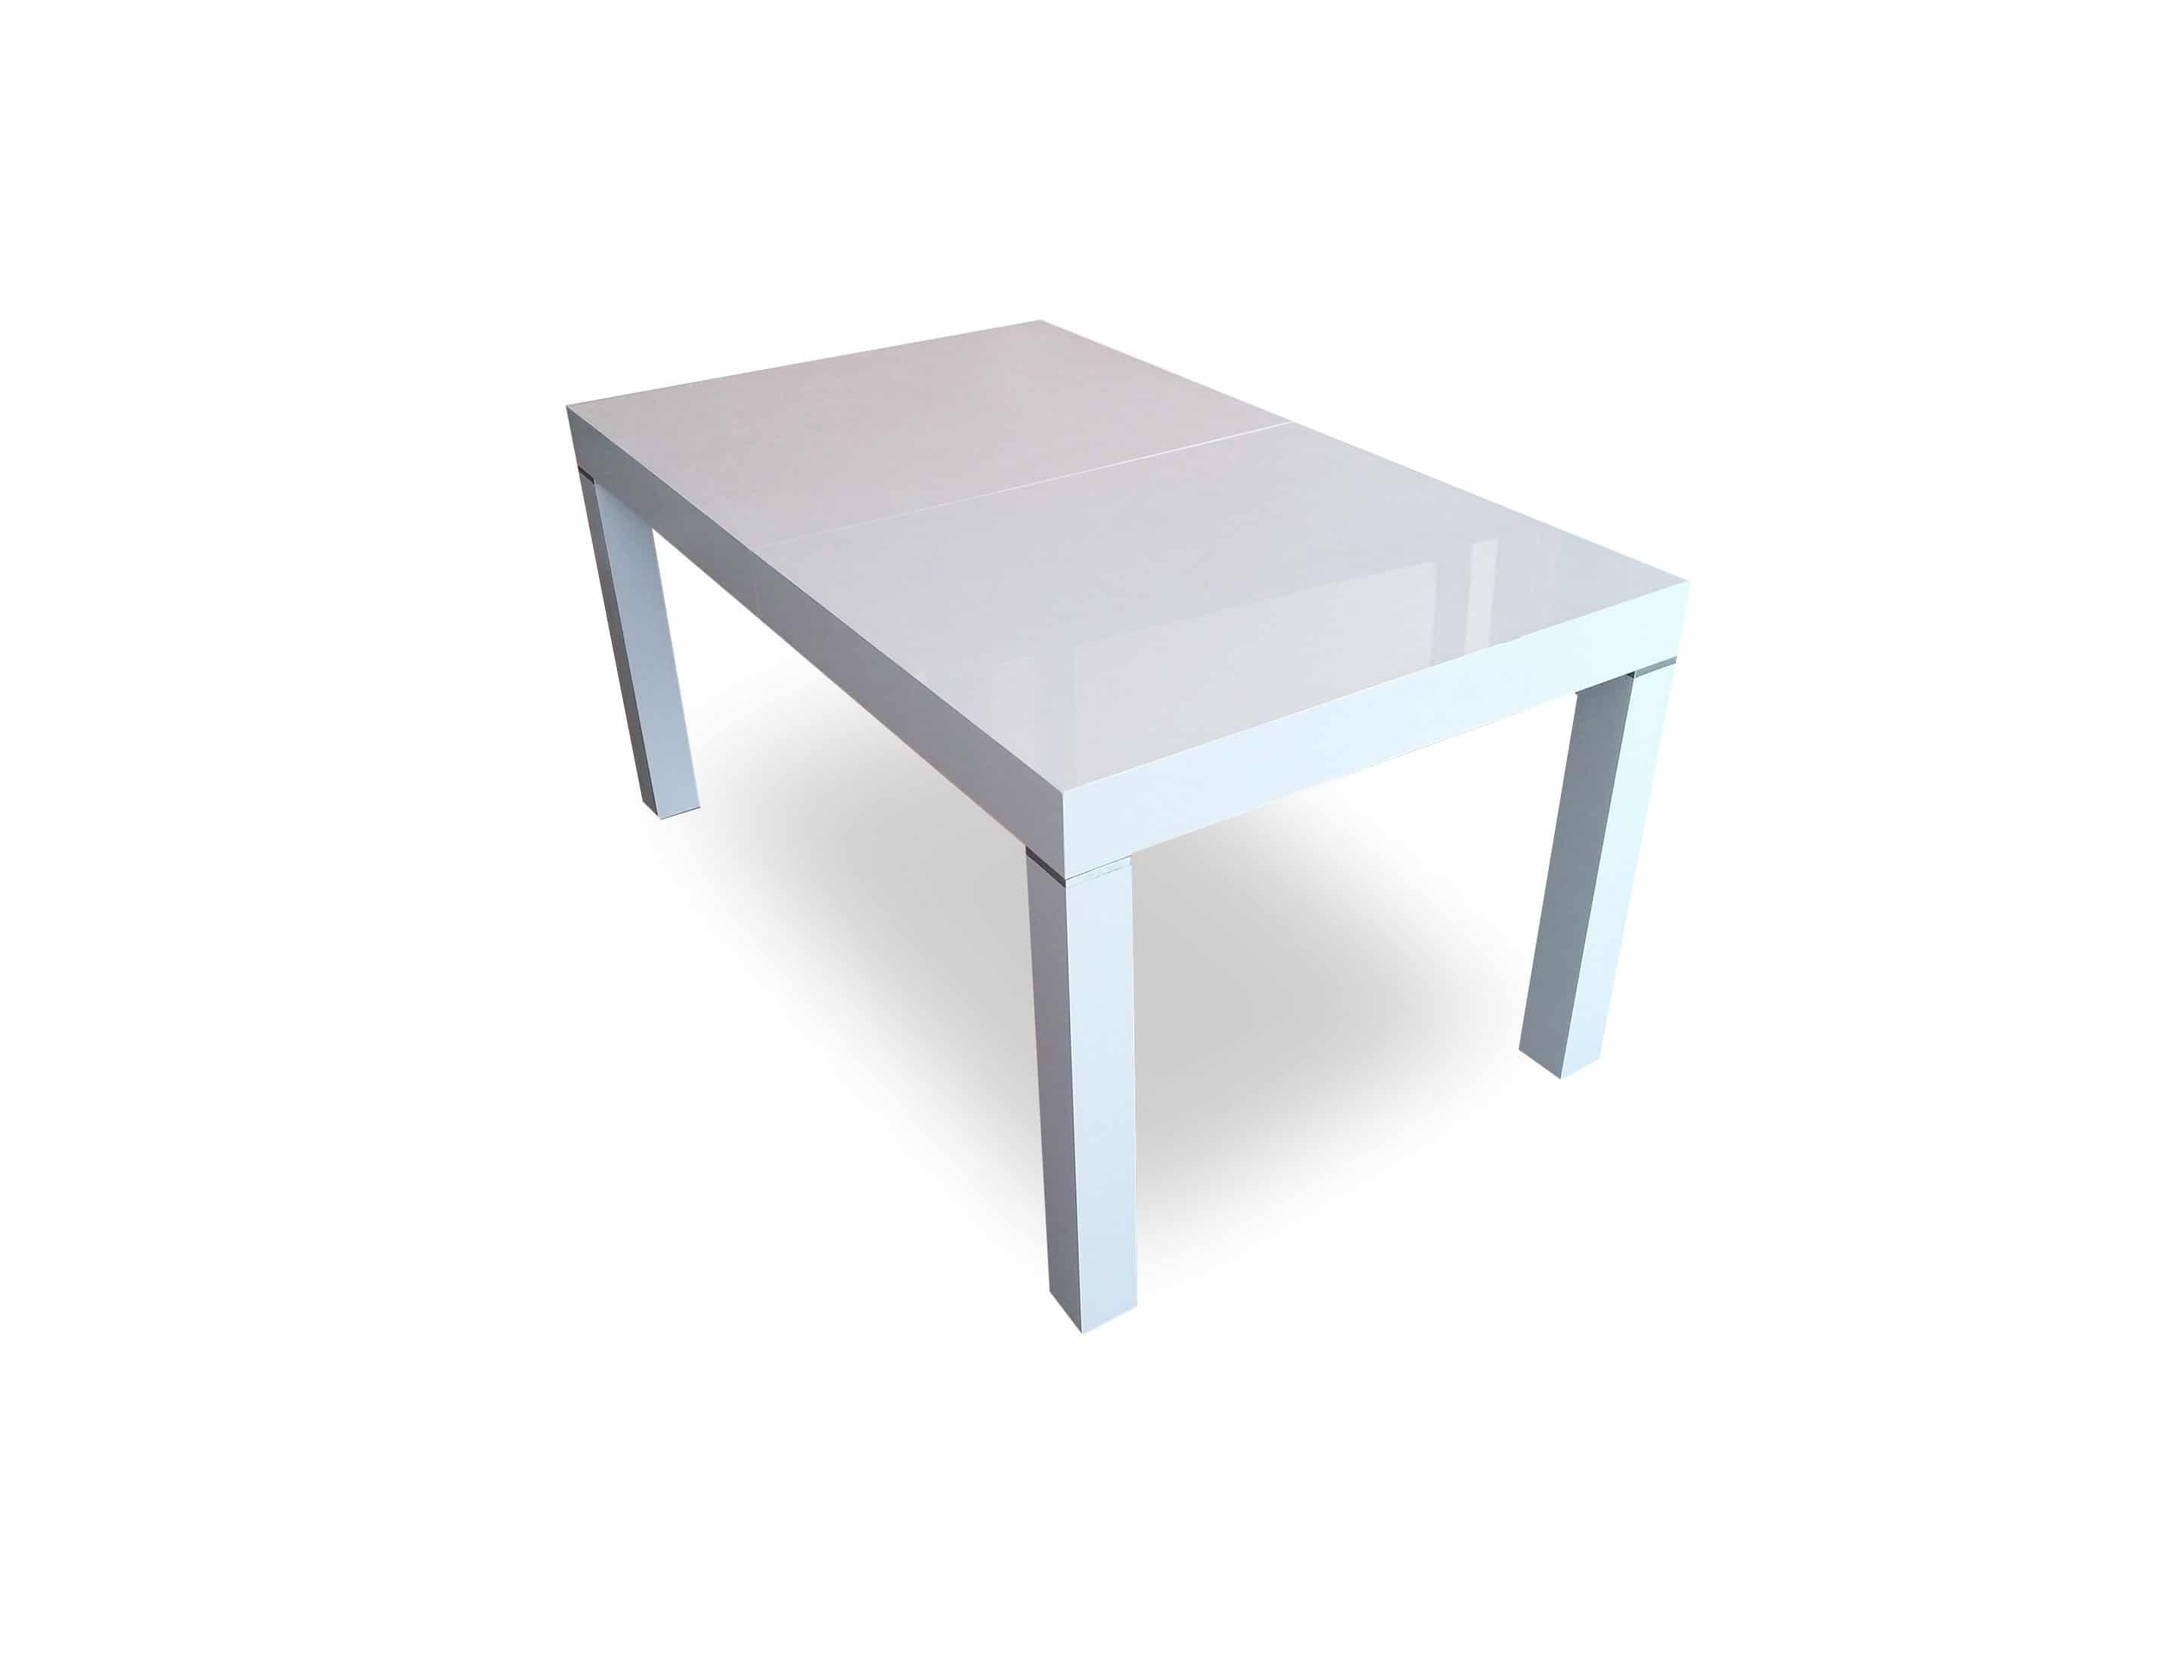 The Pillar Dining Table That Extends To Seat 12 Expand Furniture Folding Tables Smarter Wall Beds Space Savers